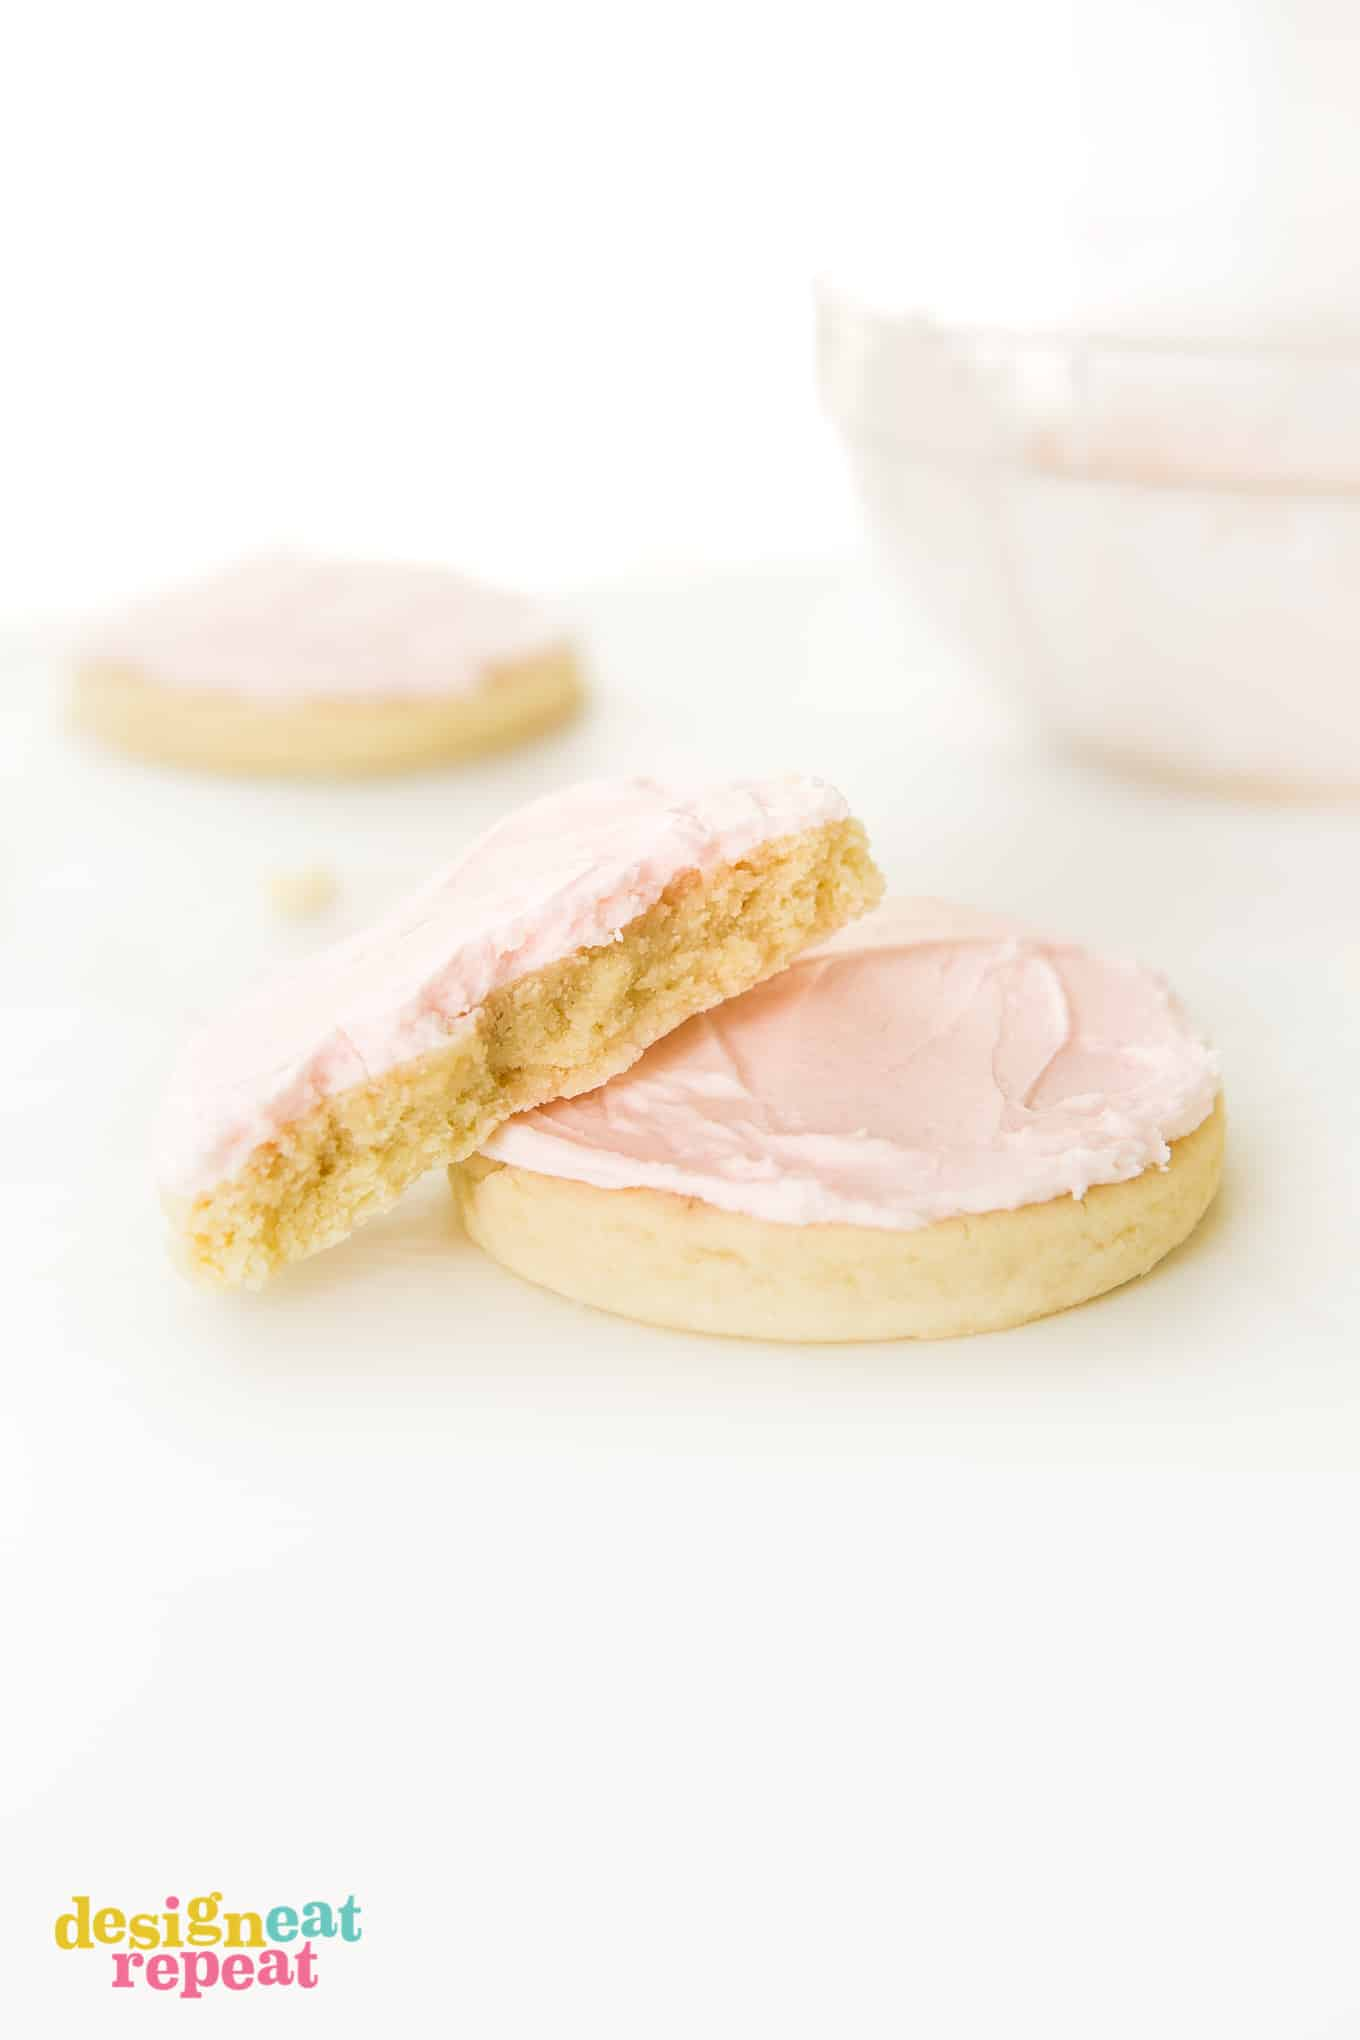 Replicate the famous Swig sugar cookie recipe by making a batch of these soft, thick sugar cookies - topped with delicious buttercream frosting! Perfect for Mother's Day, Valentine's Day, birthdays, or just as a go-to giftable treat.